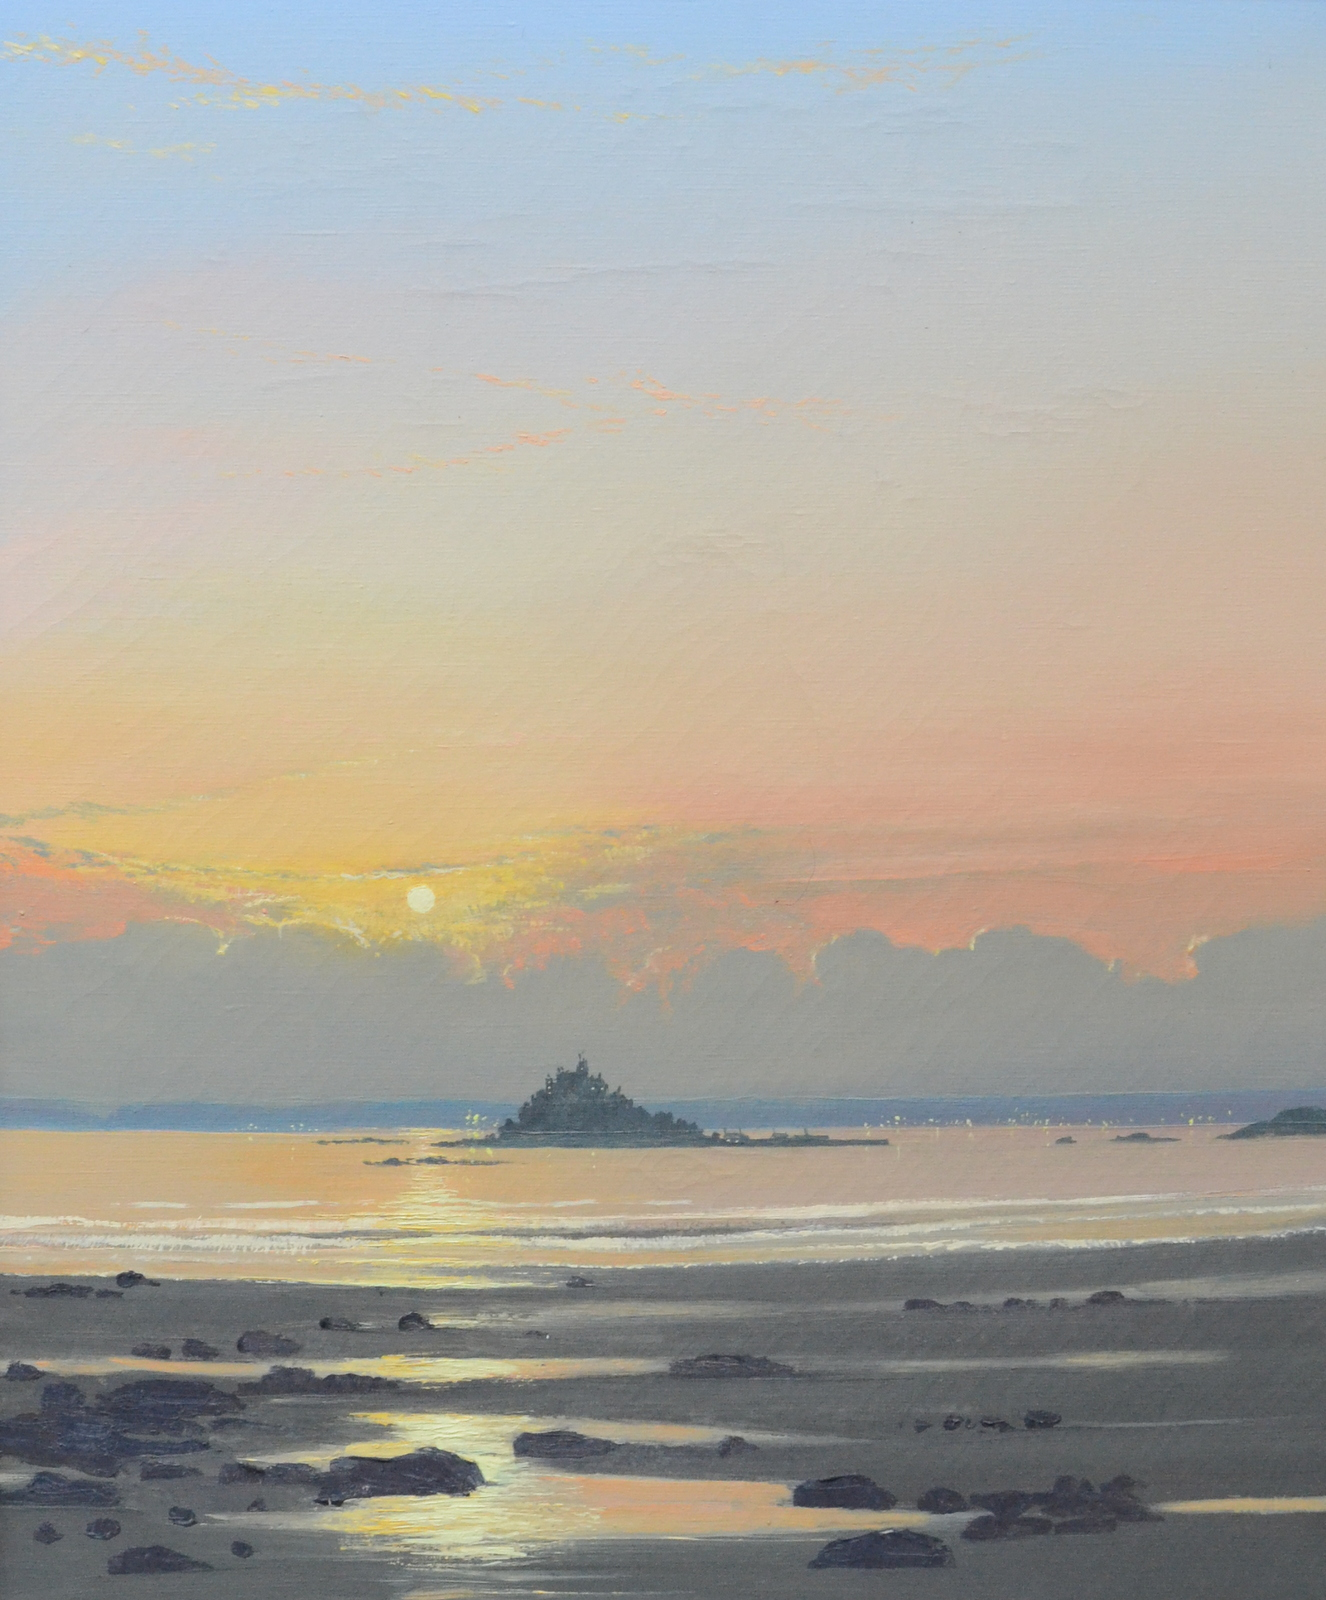 Lot 55 - JOHN MILLER Mounts Bay Evening Oil on canvas Inscribed on the back 61 x 51 cm Condition